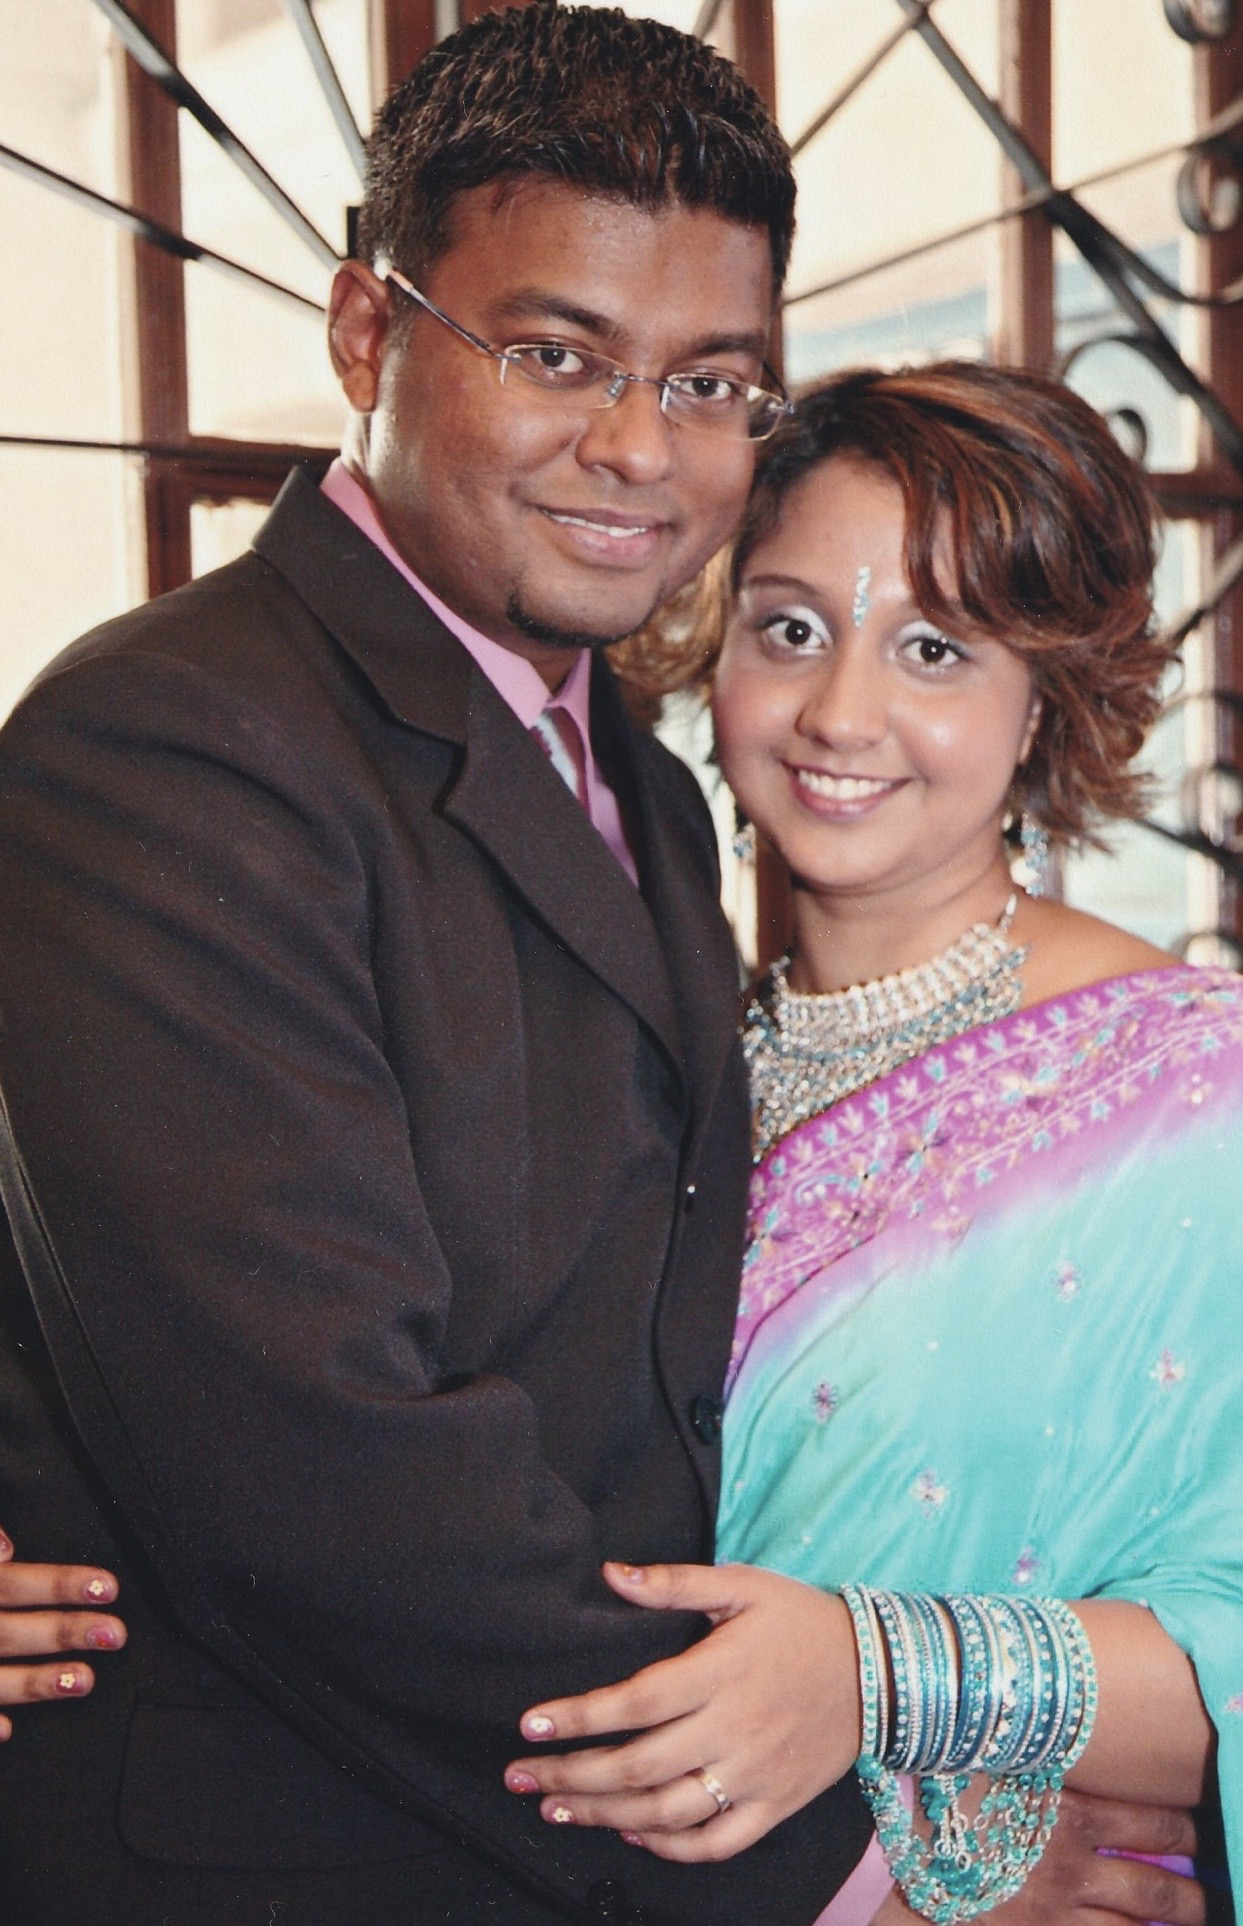 With my husband, Suresh. This photograph was taken in 2007, on the day we registered our marriage.